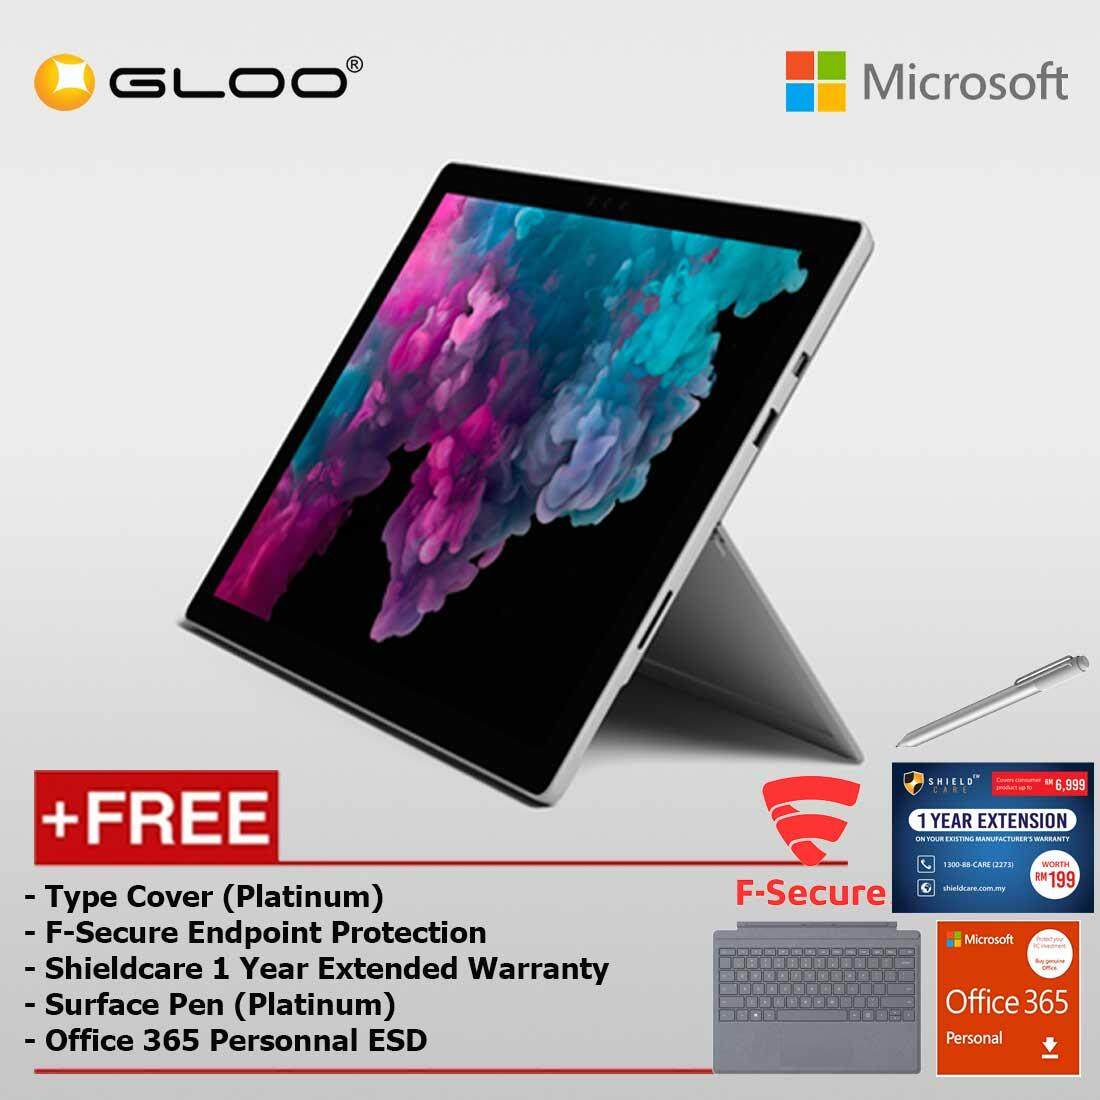 Microsoft Surface Pro 6 Core i5/8GB RAM -128GB + Type Cover Platinum + Shield Care 1 Year Extended Warranty + F-Secure End Point Protection + Pen Platinum + Office 365 Personal (ESD)